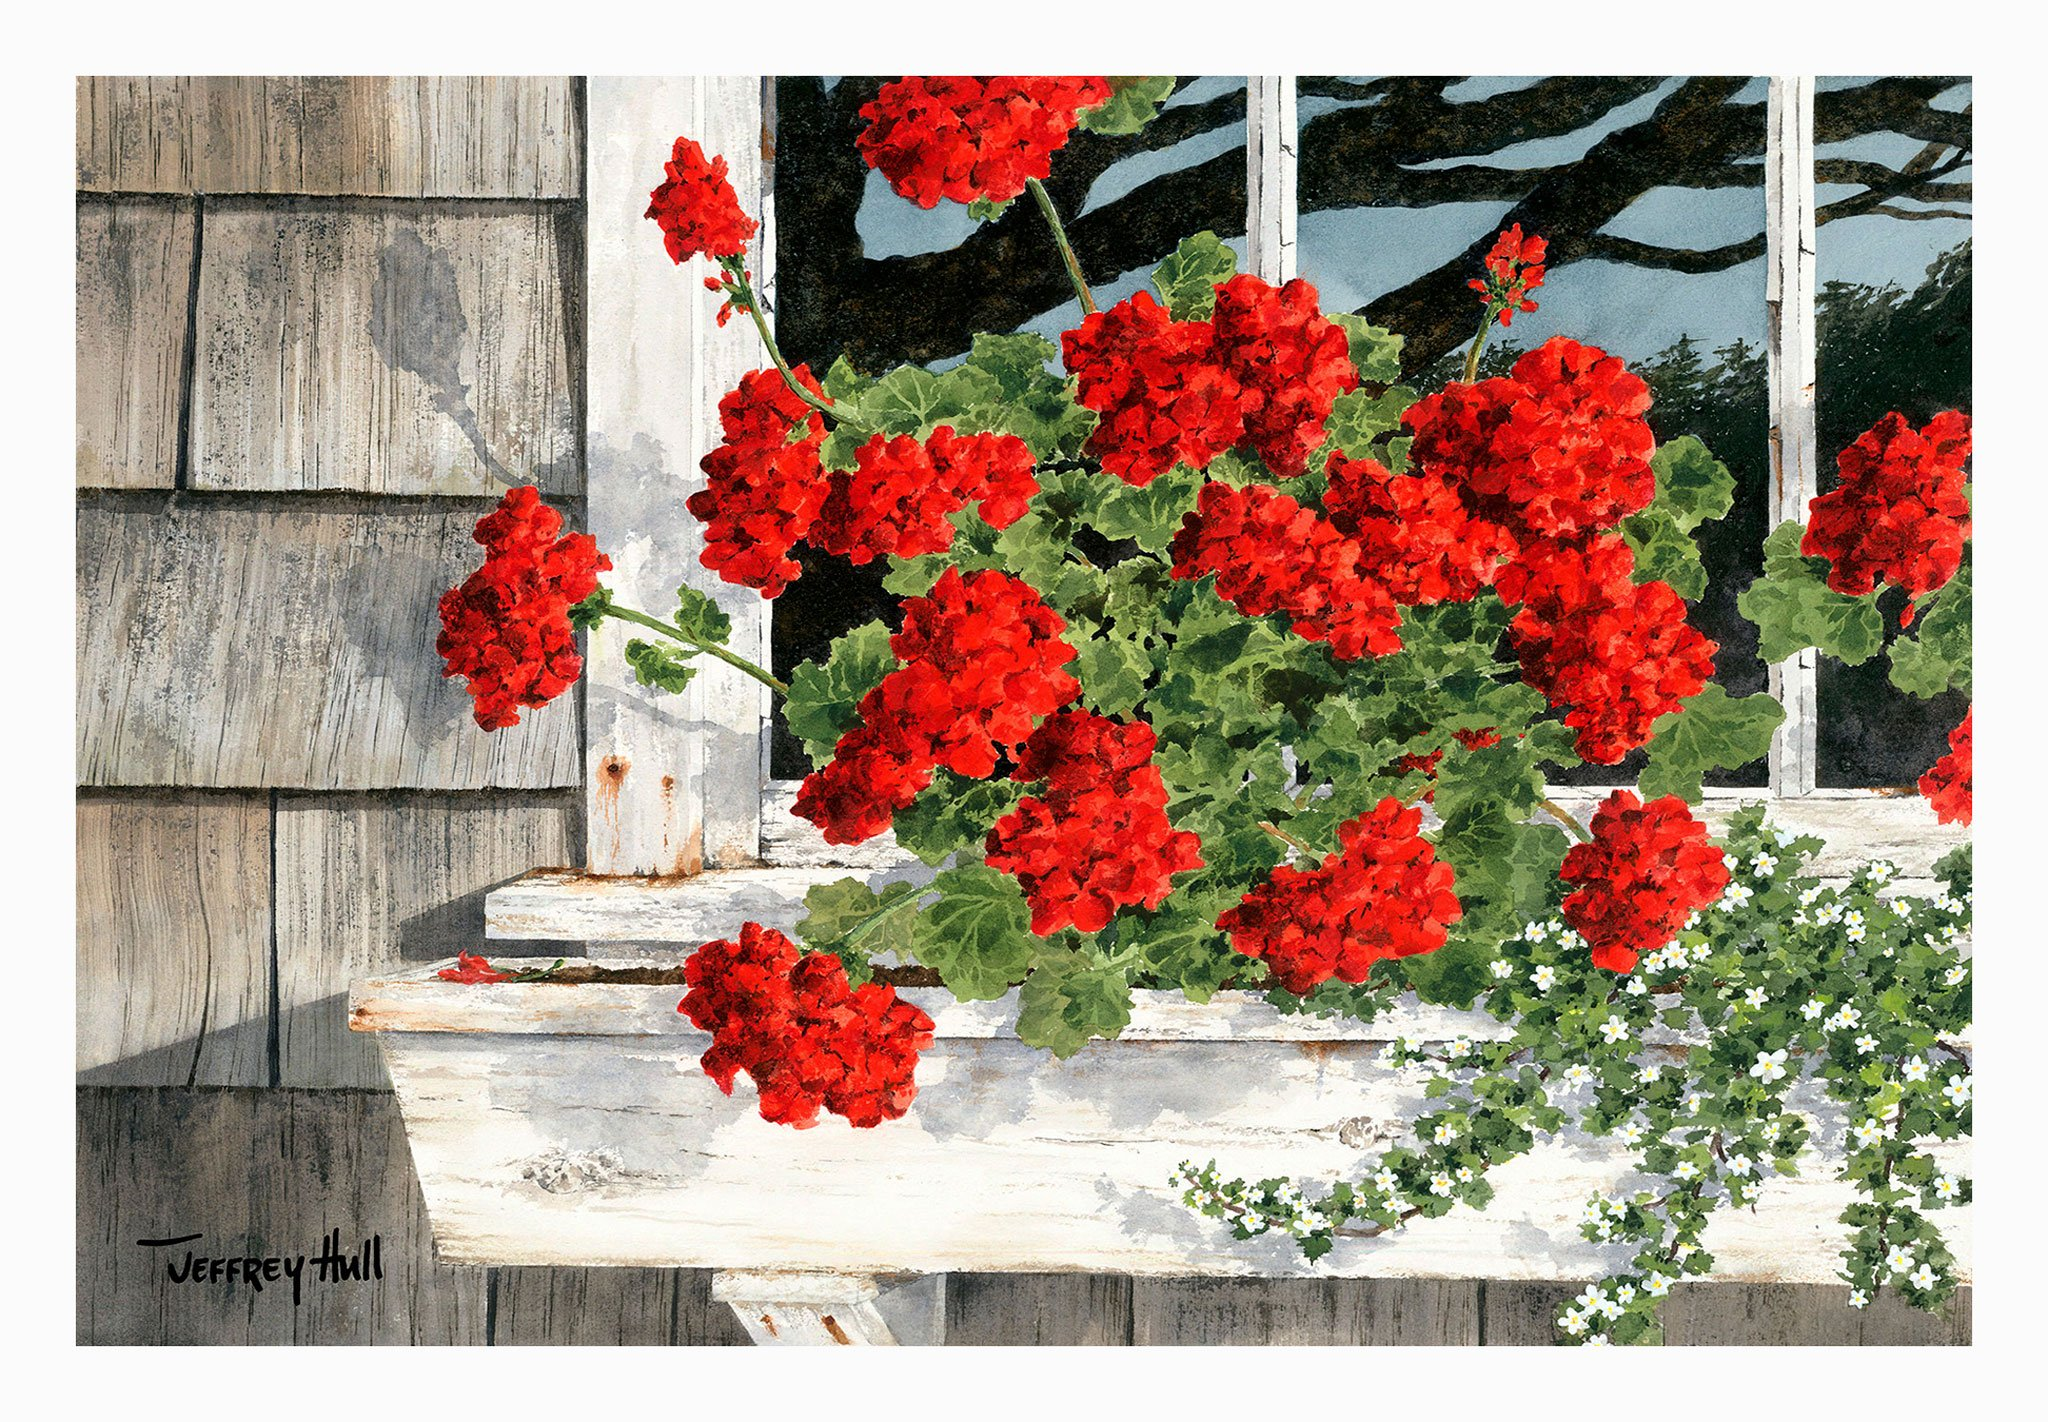 Carol_s-Geraniums-LimEd-Unframed-4-Website-2021